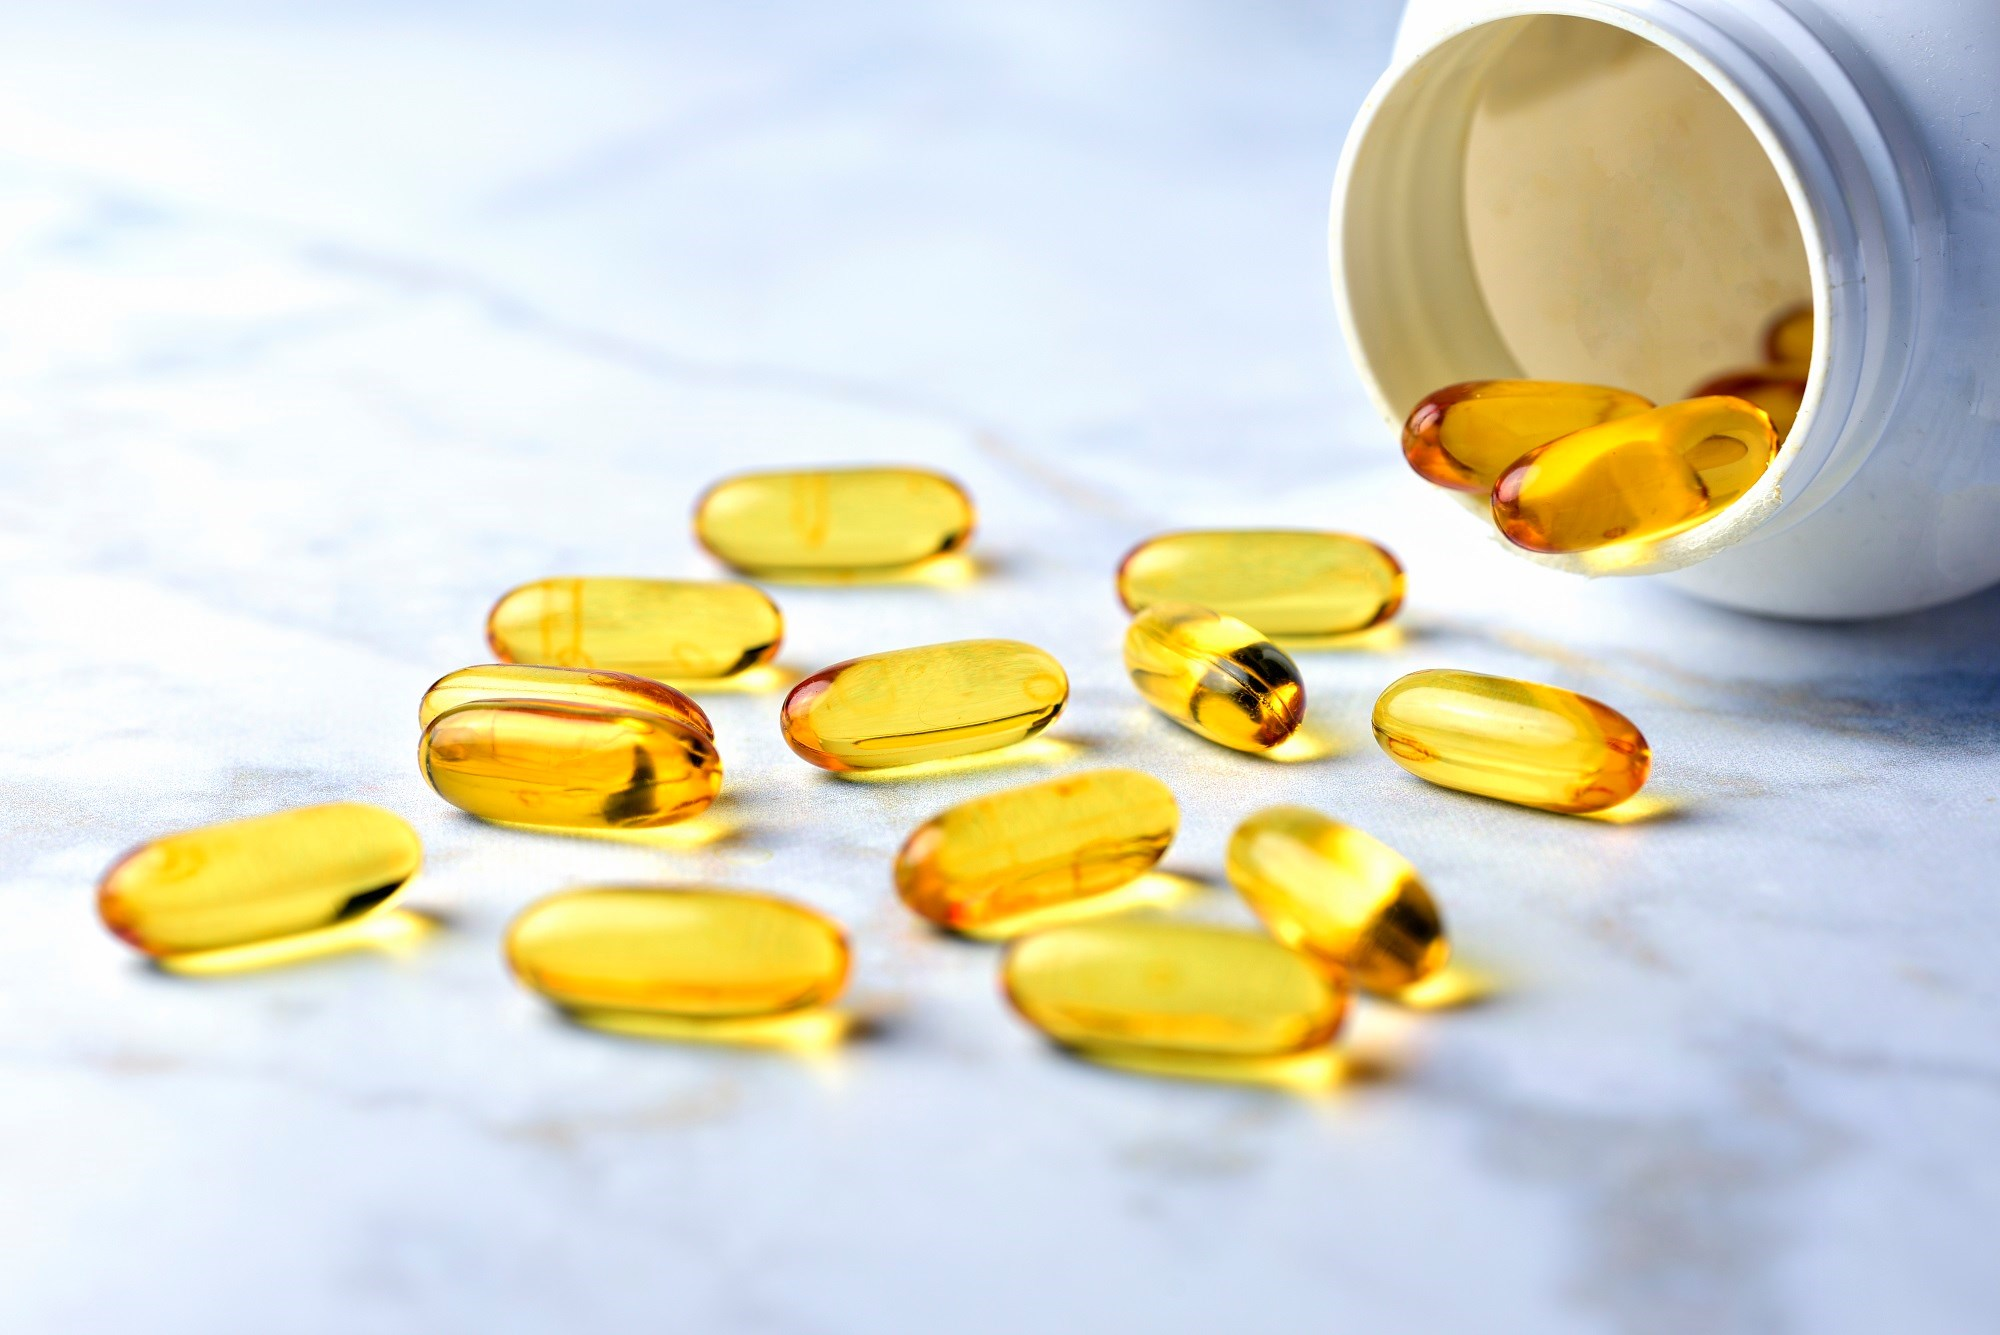 Omega-3 Fatty Acids Reduce Major CV Events in Mild Hypertriglyceridemia